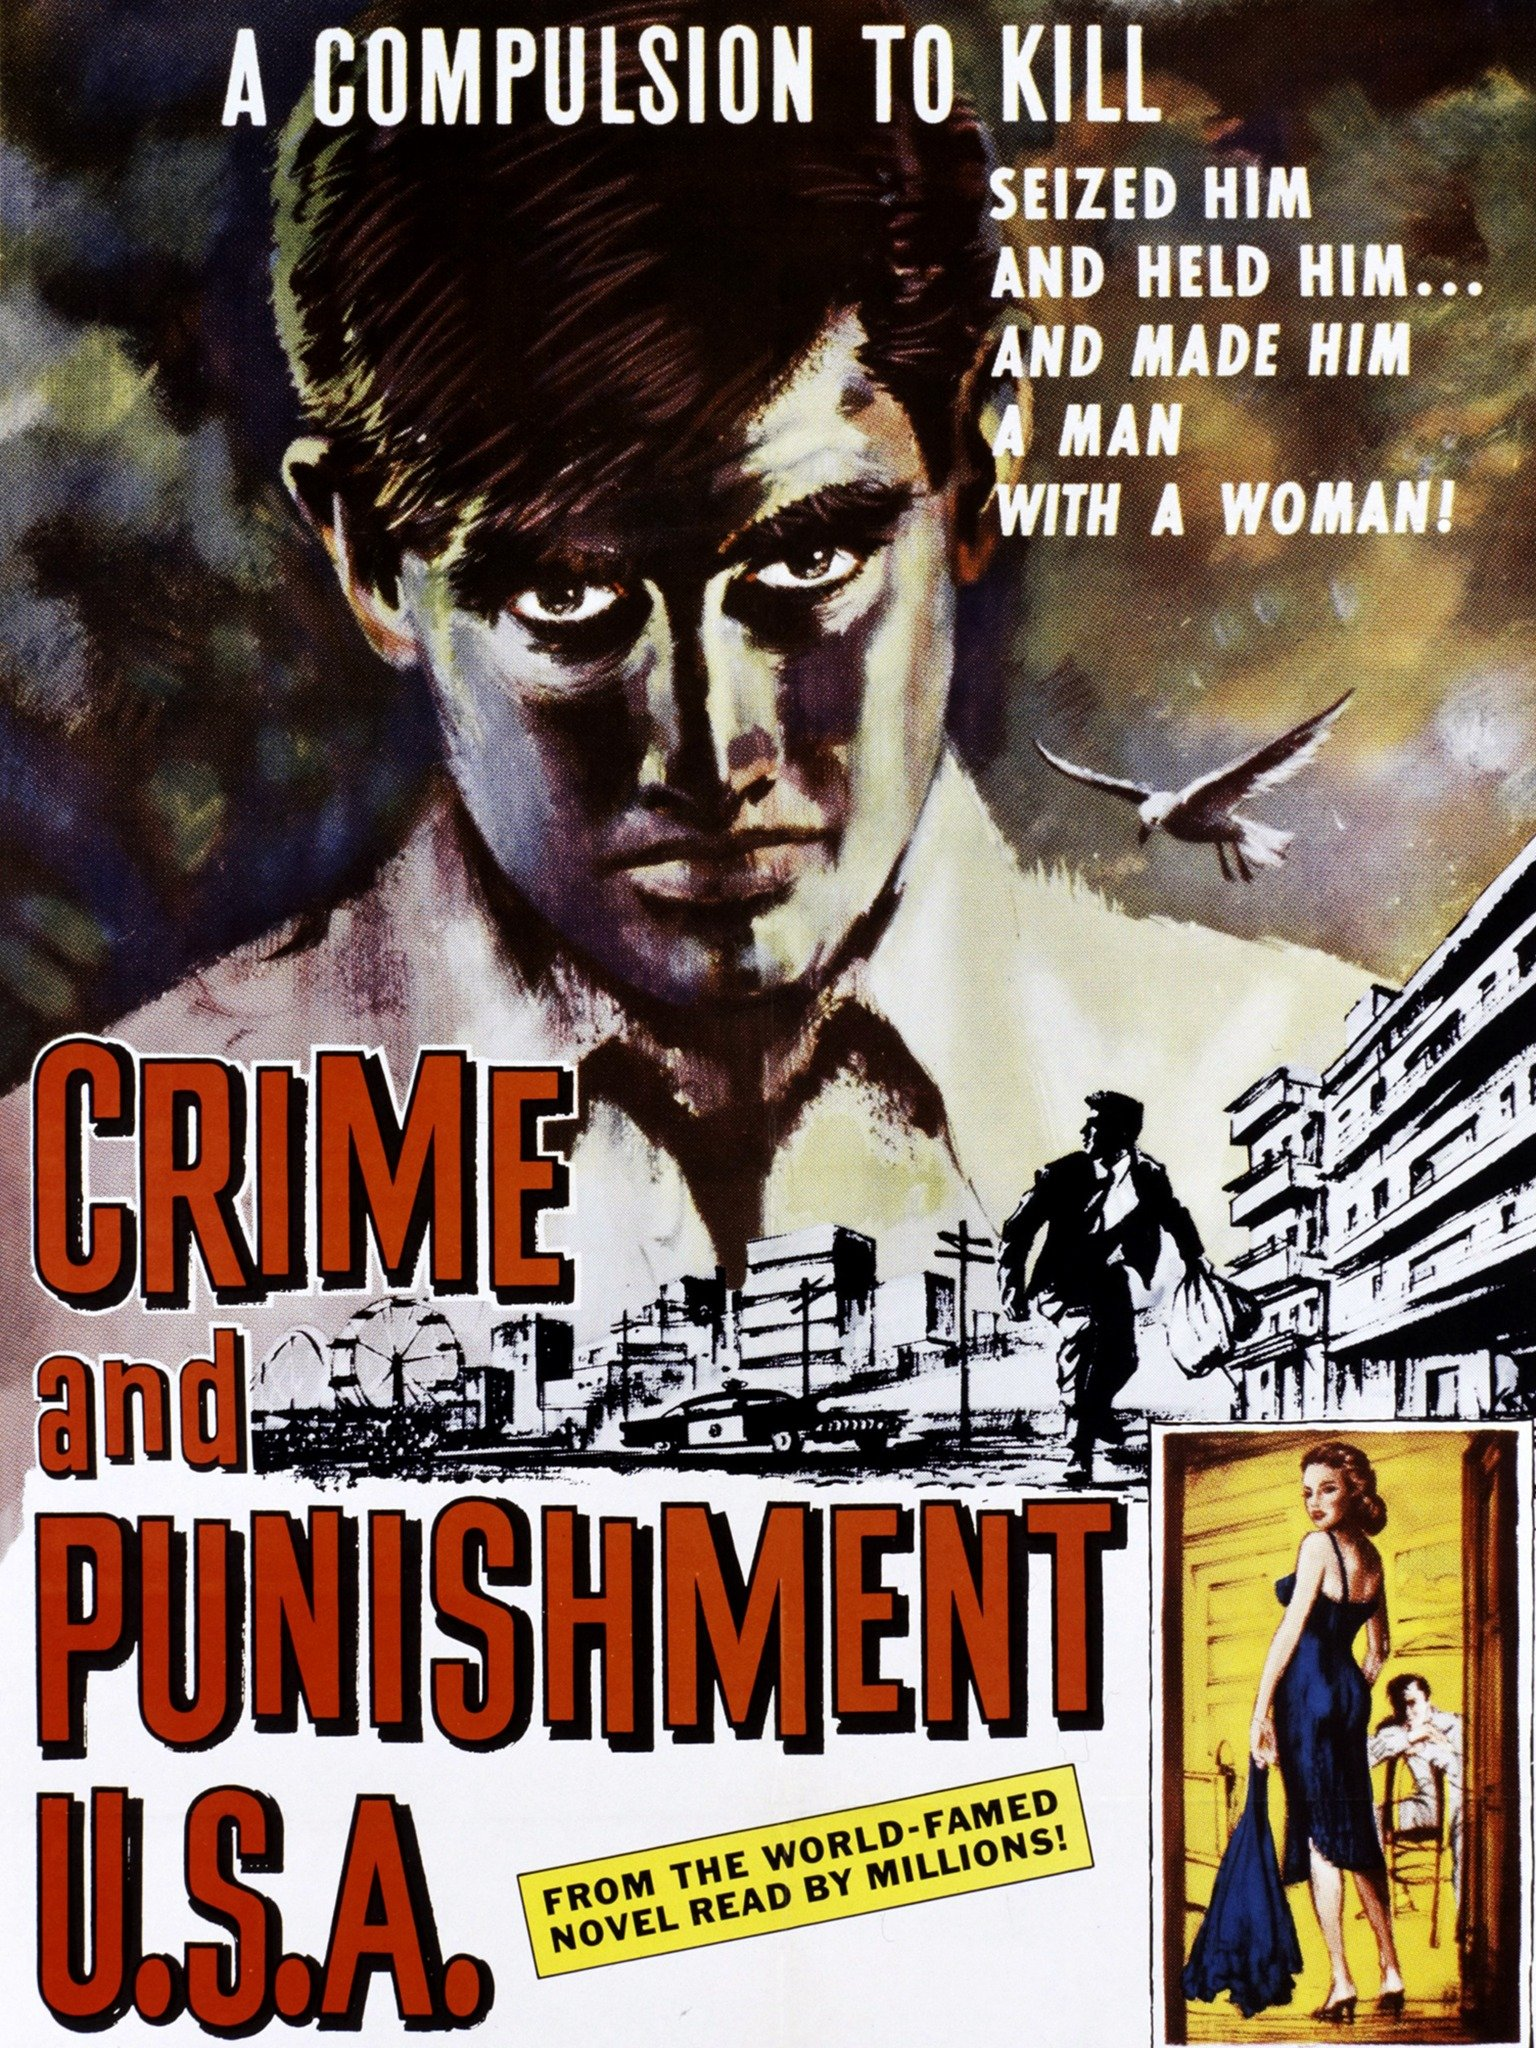 Crime and Punishment, U.S.A.